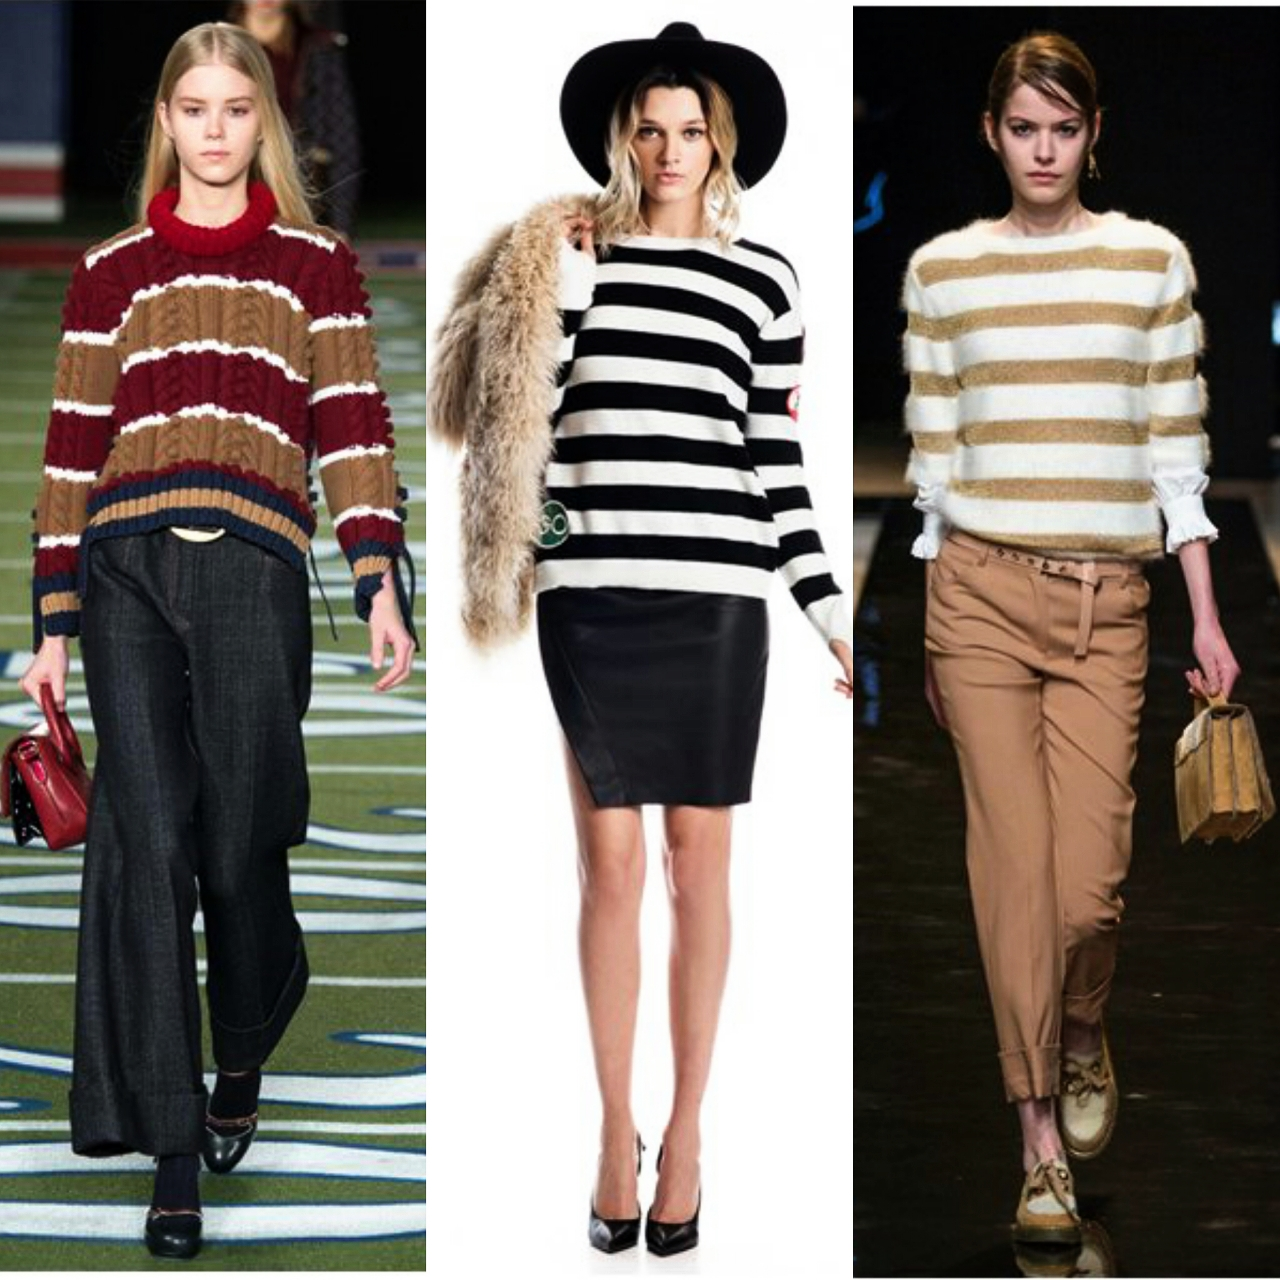 winter fashion tips: how to wear knitted cardigan or a sweater